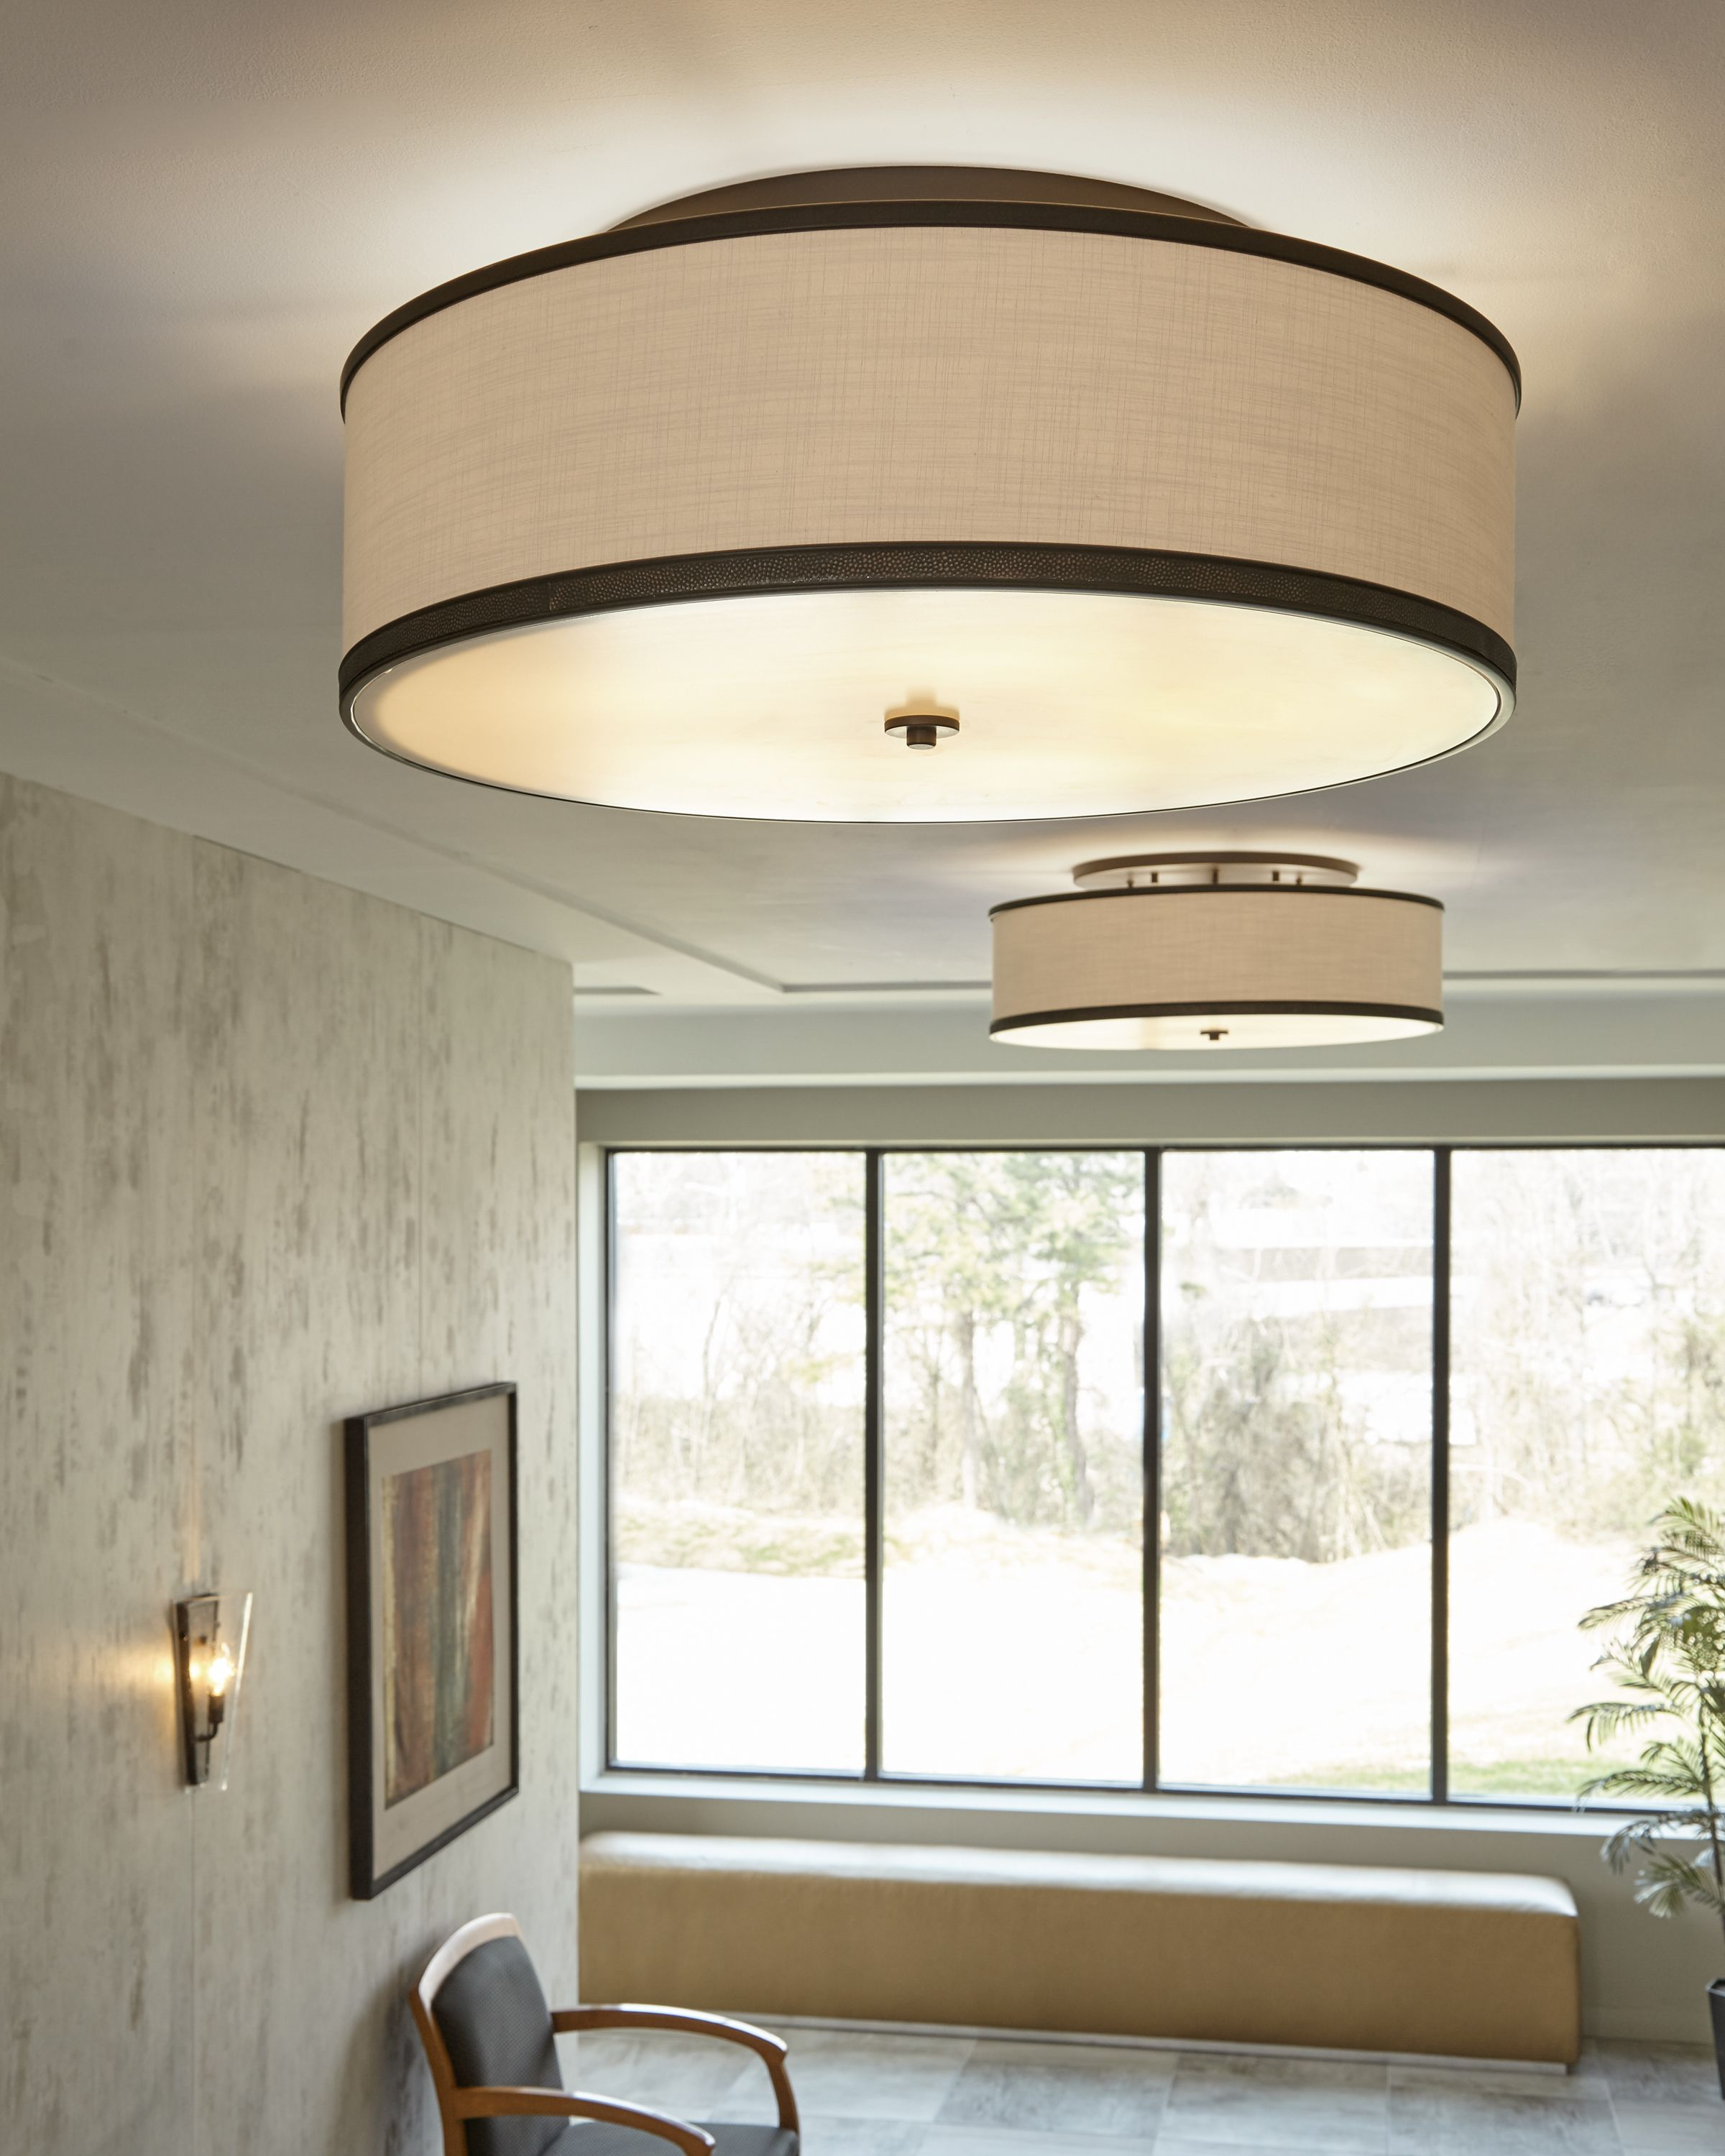 Family Room Fixture D 30 1 4 H 11 1 2 5 Med A19 Up To 75w Sf338orb 5 Light Indoor Semi Flush Mount O Ceiling Lights Living Room Living Room Lighting